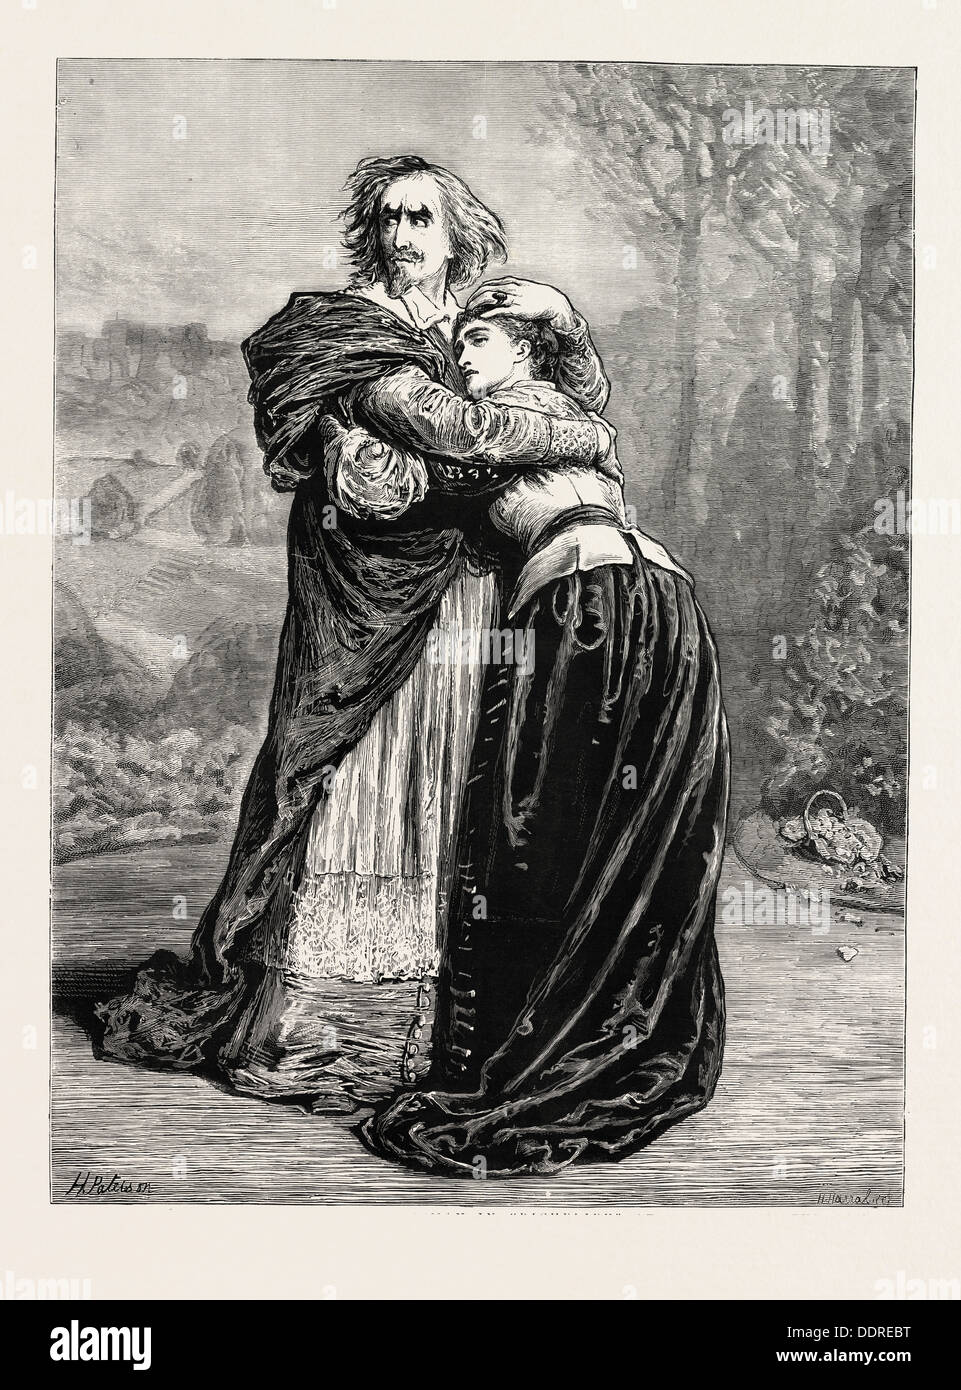 MR. IRVING AND MISS ISABEL BATEMAN IN RICHELIEU AT THE LYCEUM THEATRE, LONDON, UK, 1873 engraving - Stock Image